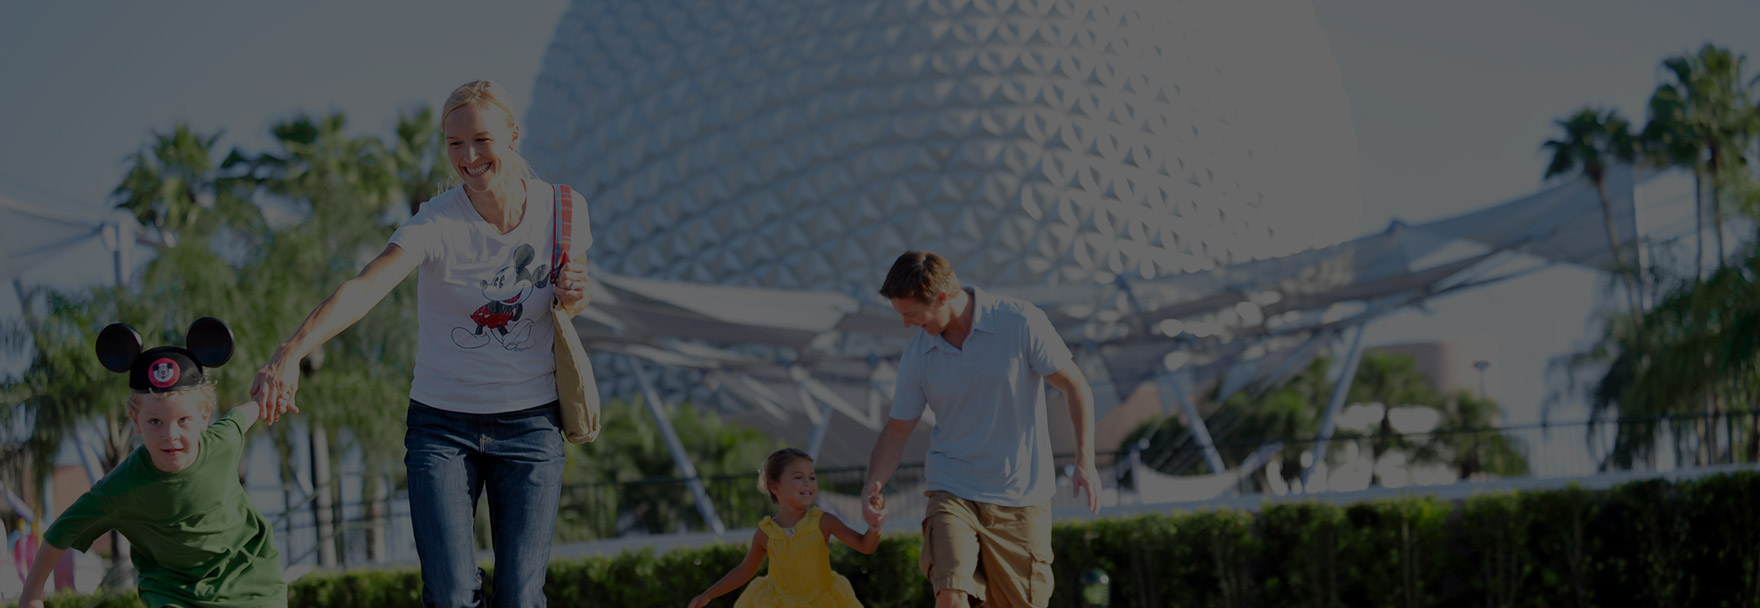 walt disney world resort vacation packages southwest vacations rh southwestvacations com disney world all inclusive packages with airfare from toronto All Inclusive Vacations including Air